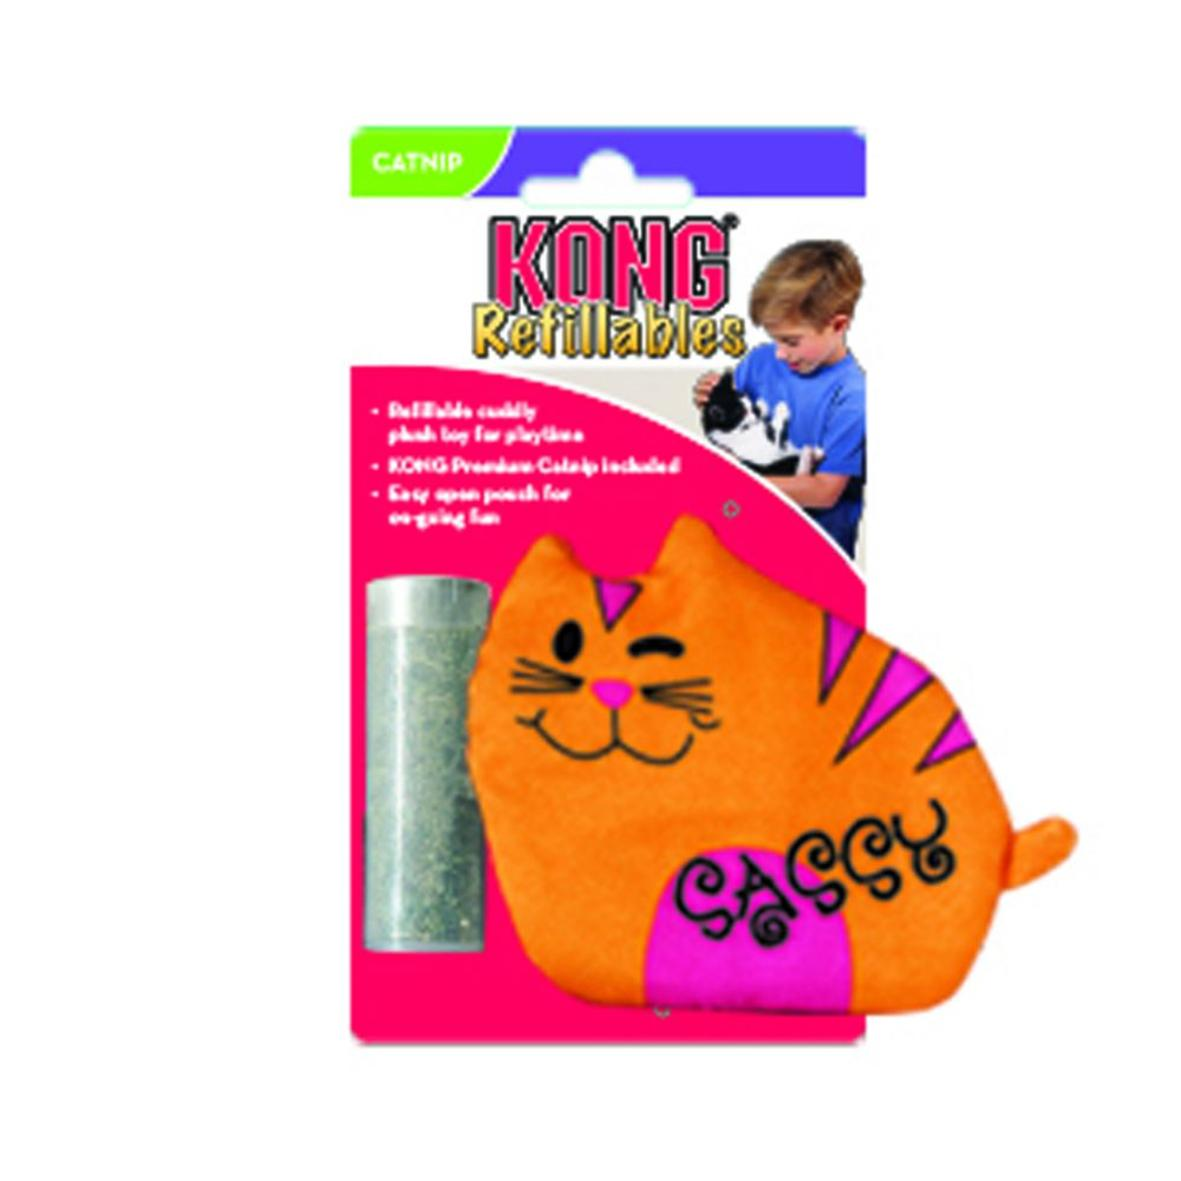 KONG Refillables Purrsonality Sassy Cat with Catnip 10cm